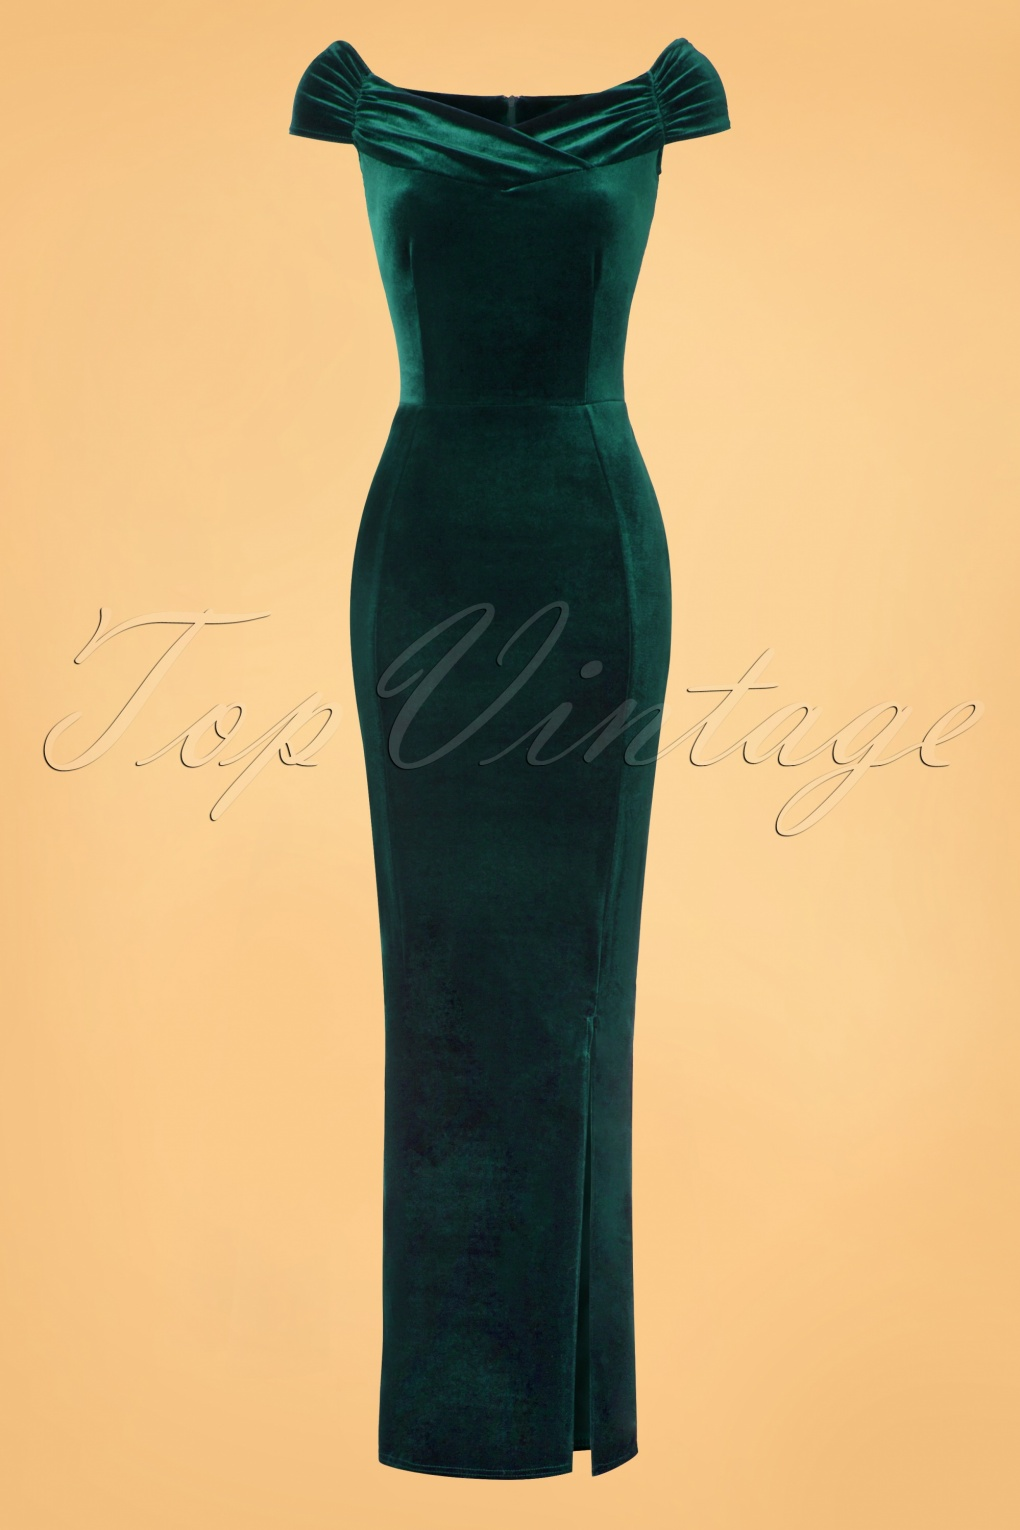 1950s Prom Dresses & Party Dresses 50s Beverly Velvet Maxi Dress in Green £62.66 AT vintagedancer.com